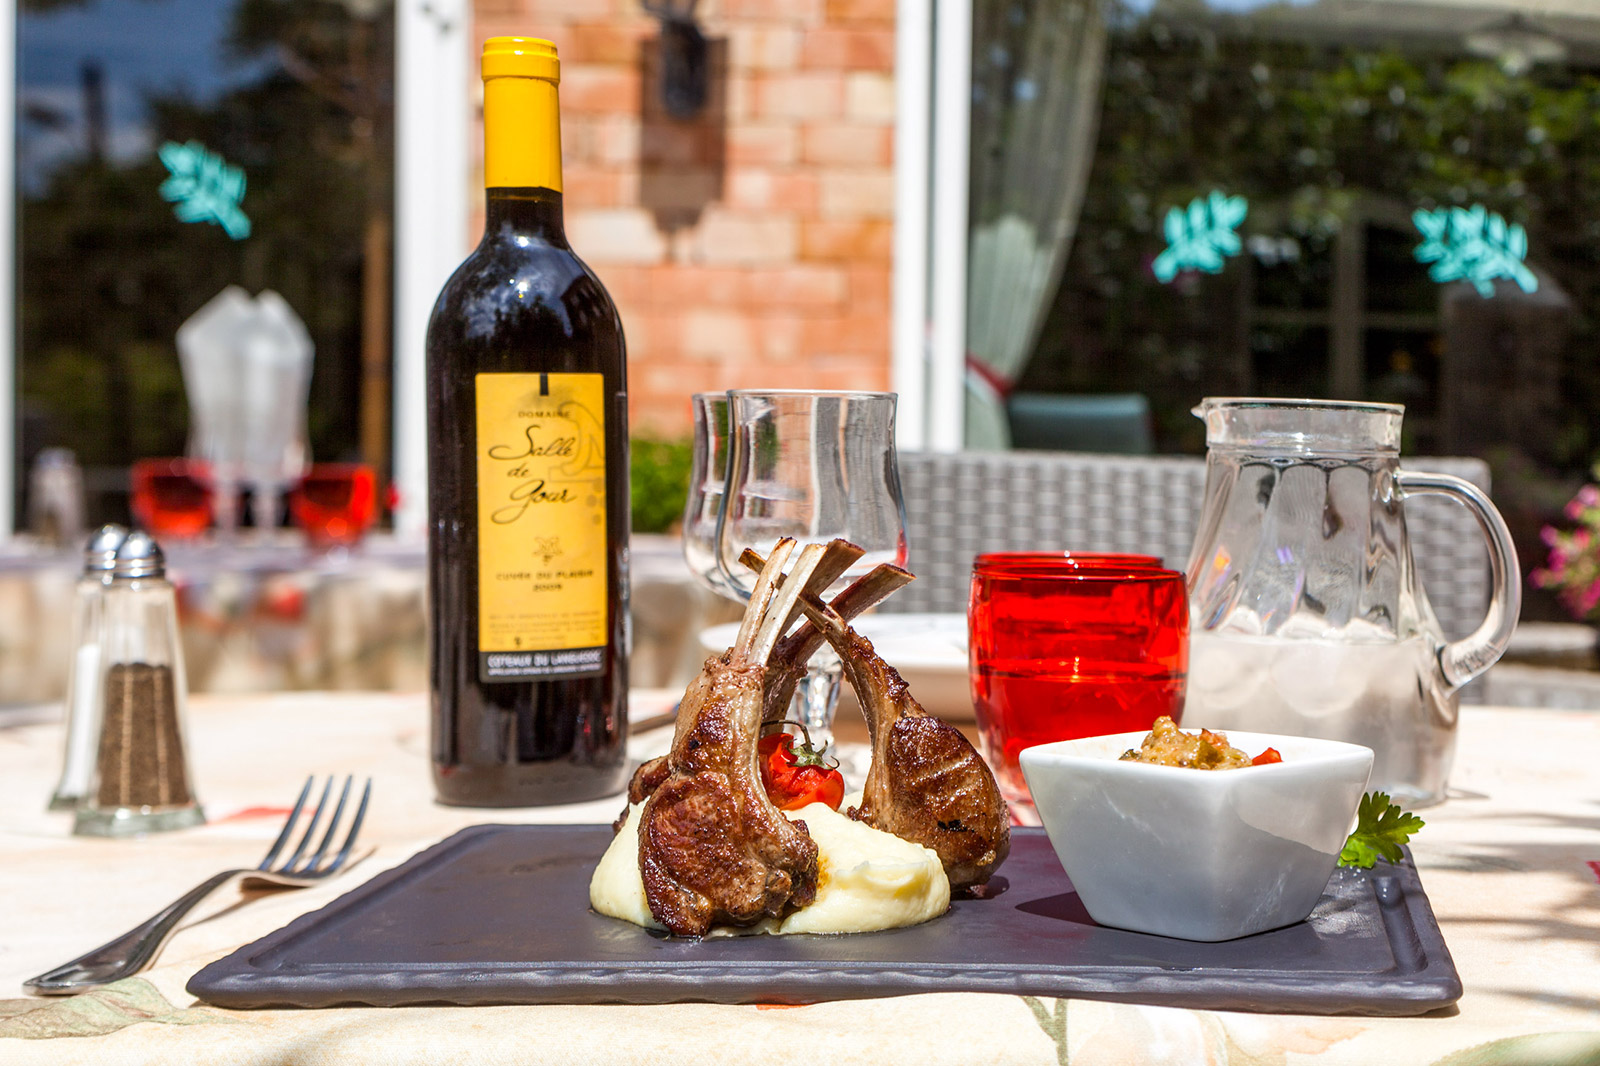 Taste the cevenol kitchen on our terrace